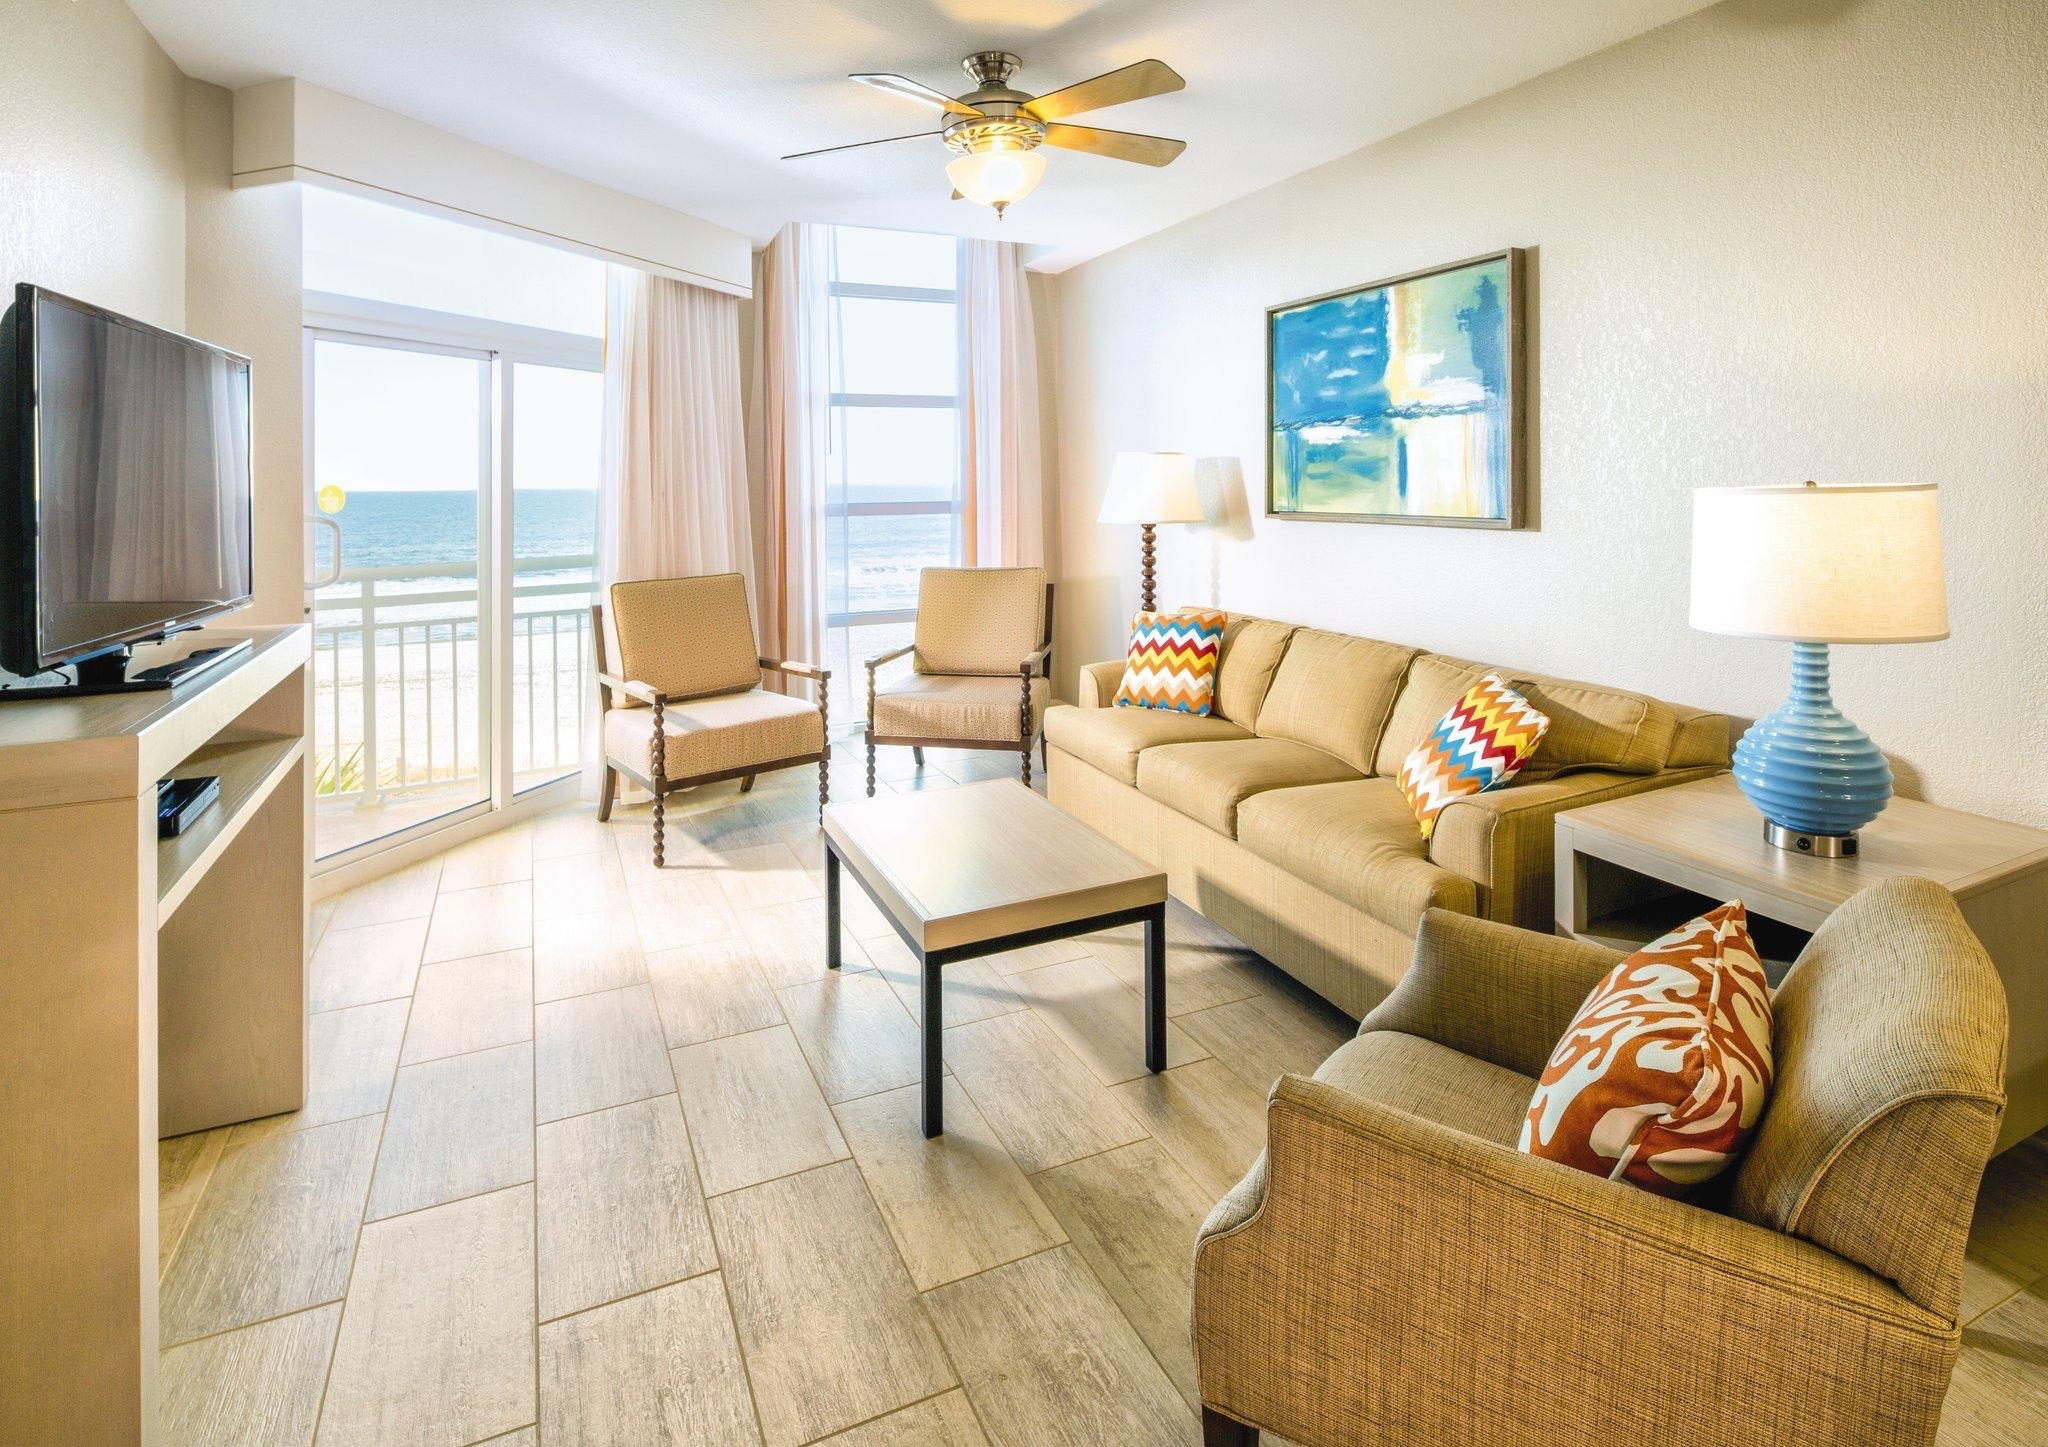 Apartment Ocean Blvd 1 Bedroom 1 Bathroom photo 20364416